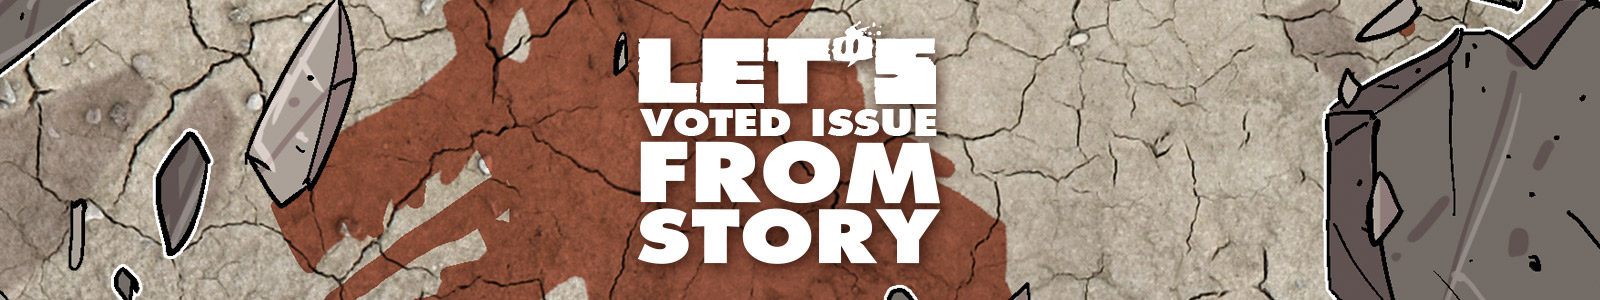 Let's  Voted issue From Story - ฉบับนี้มีที่มา